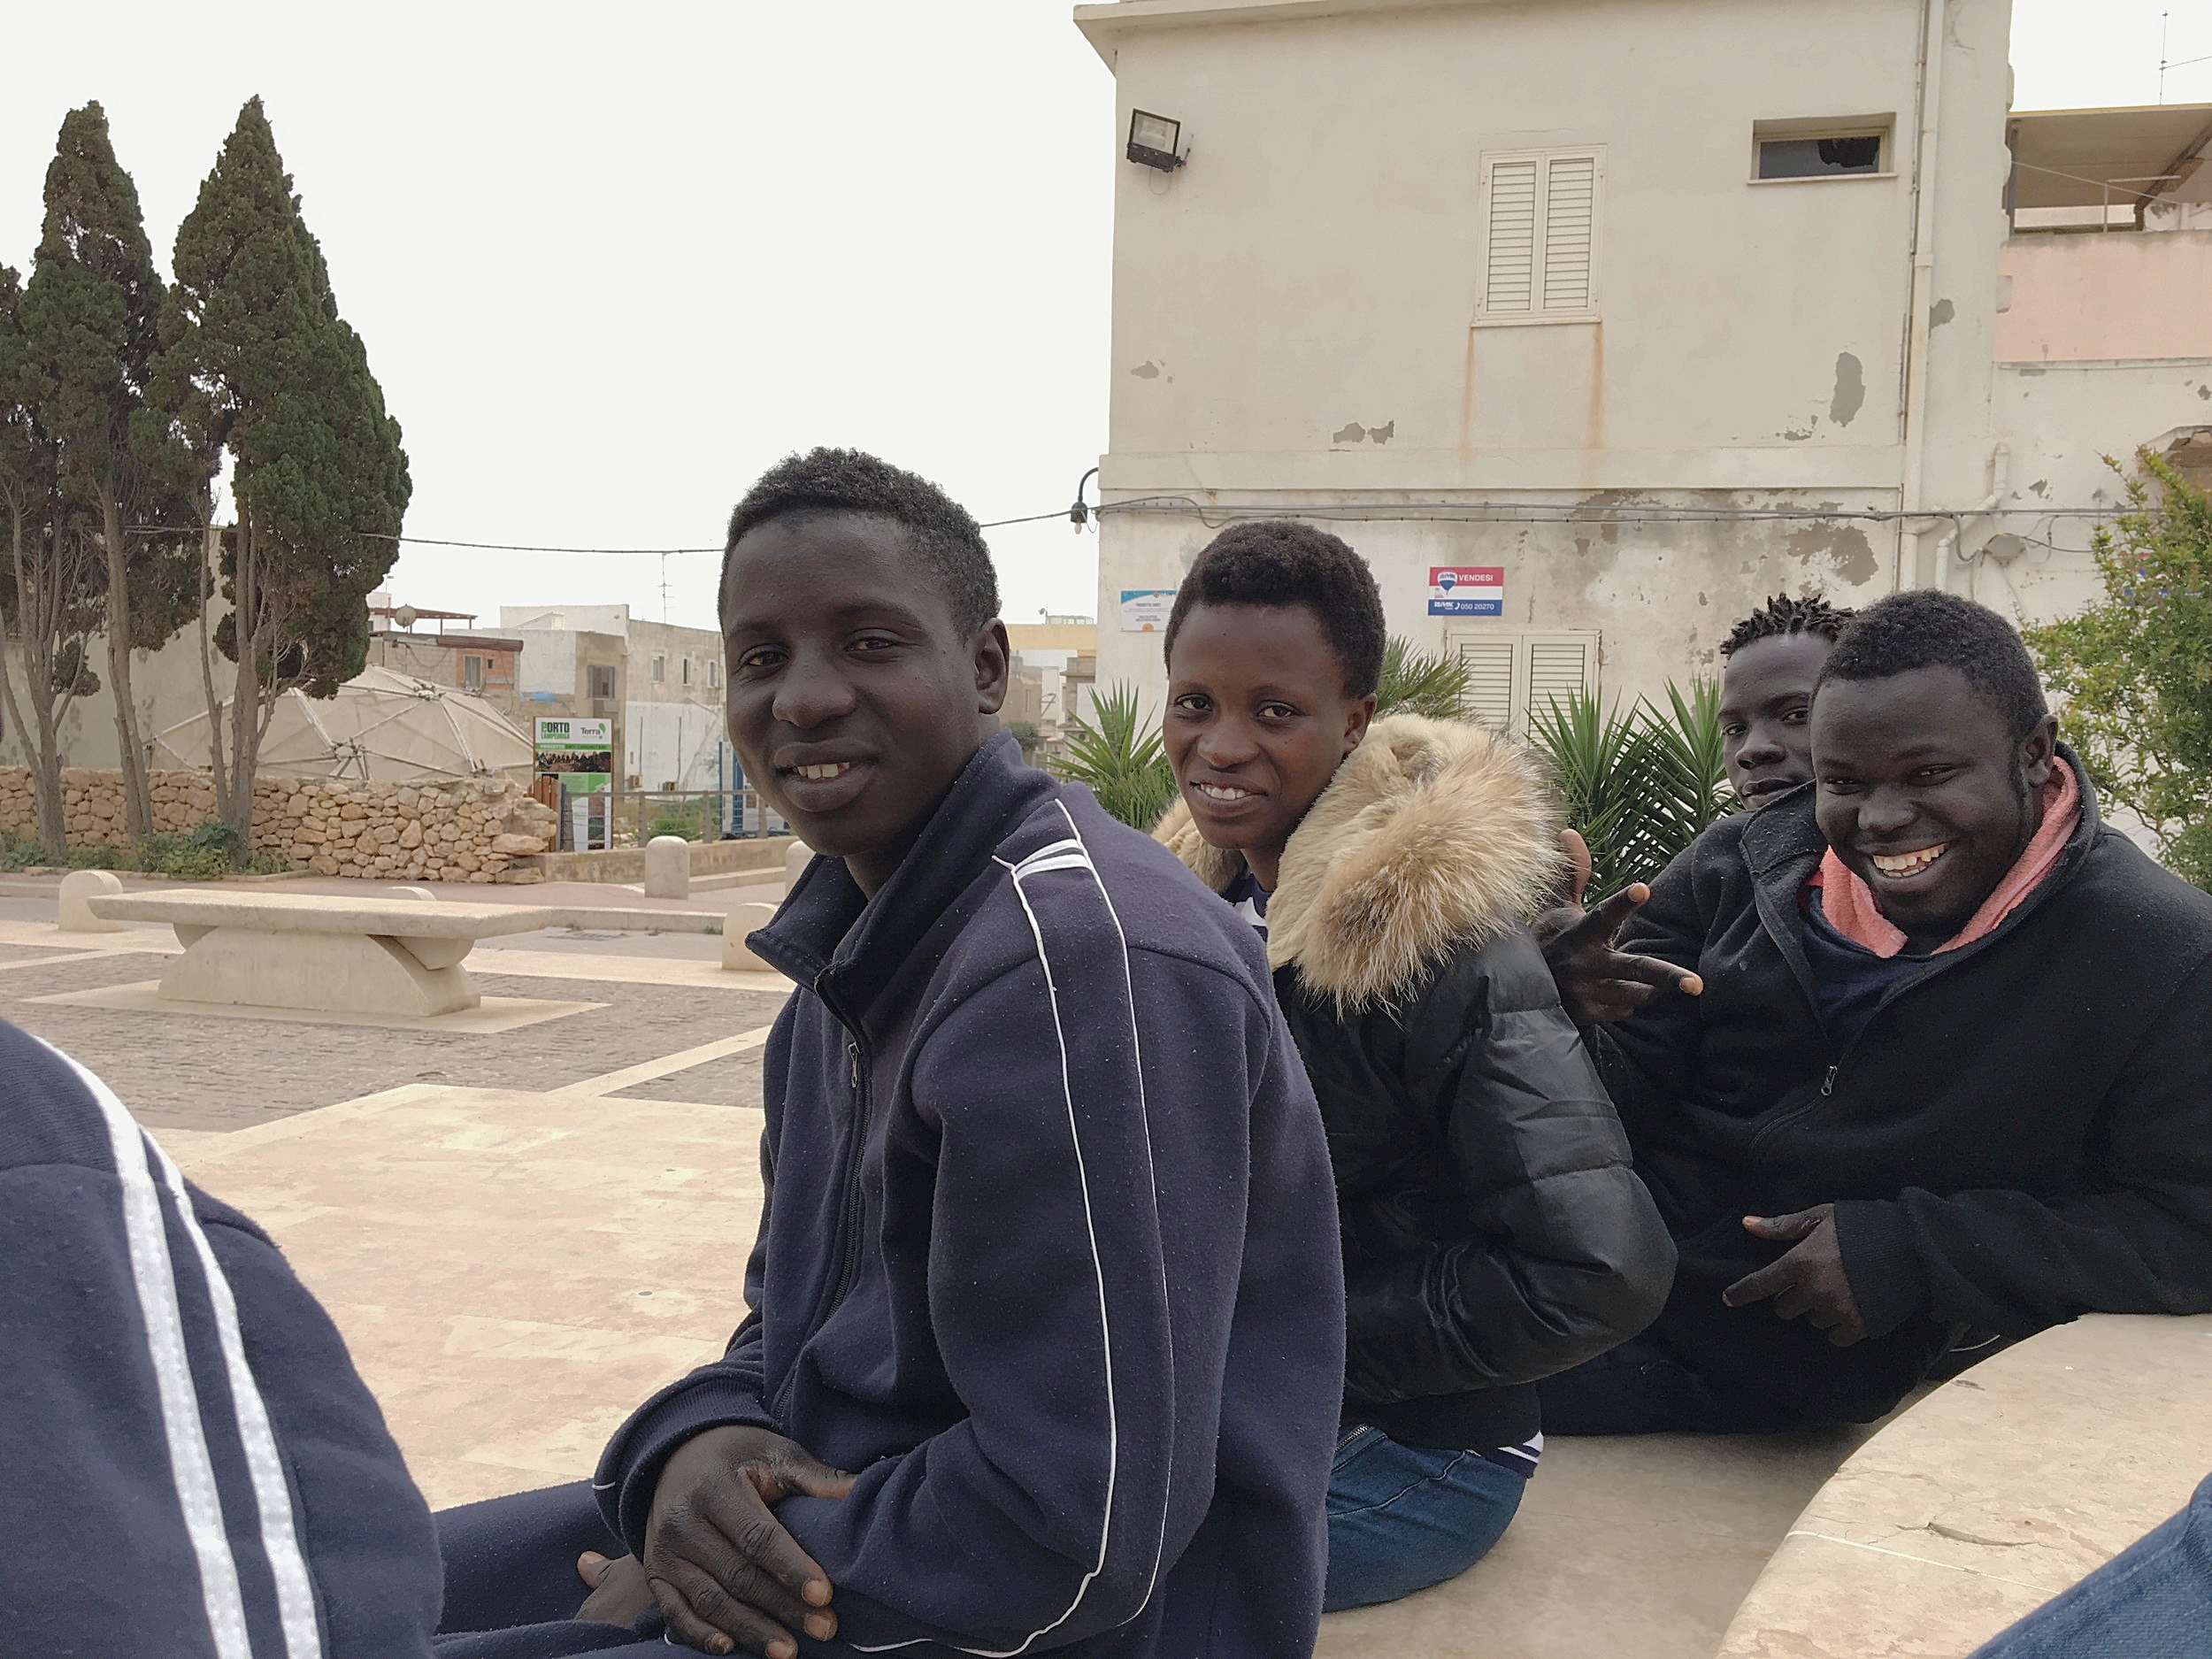 From left to right: Ousman, Fatou (22, Gambia), Yanks (20, Gambia) and Malick (17, Gambia). In Lampedusa, April 2018. © Pamela Kerpius